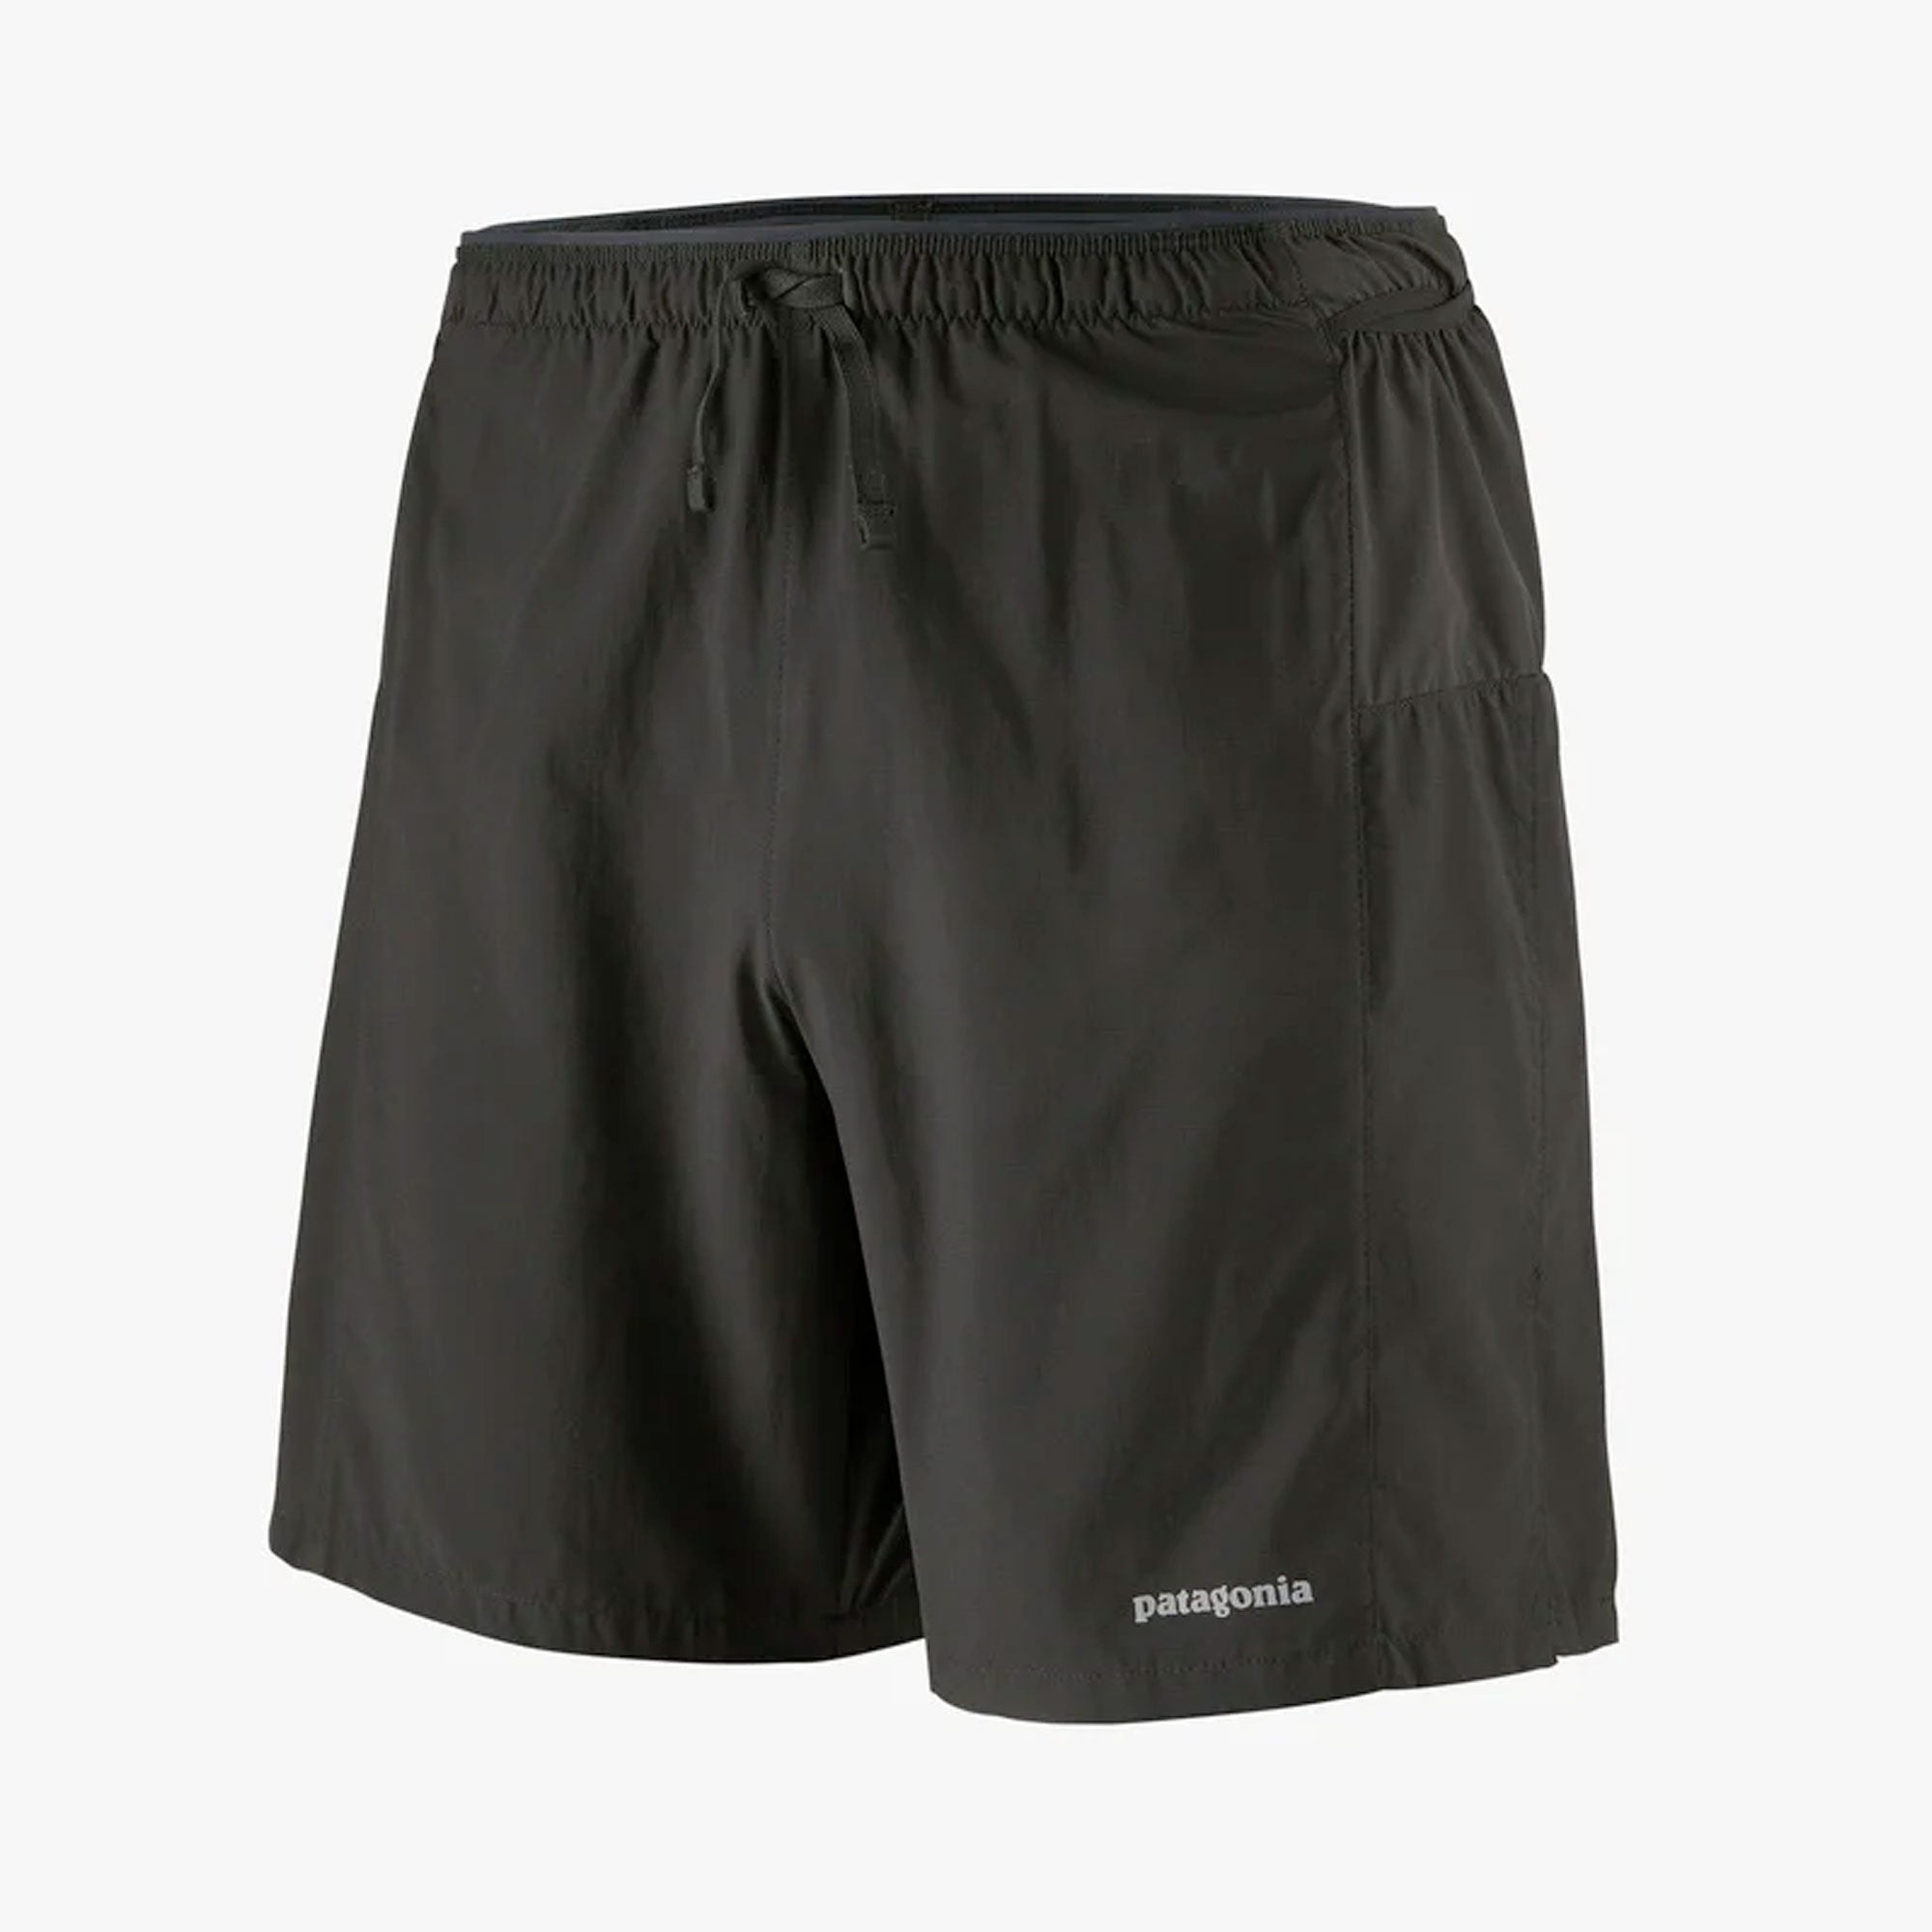 "Patagonia Strider Pro 7"" Men's Shorts"